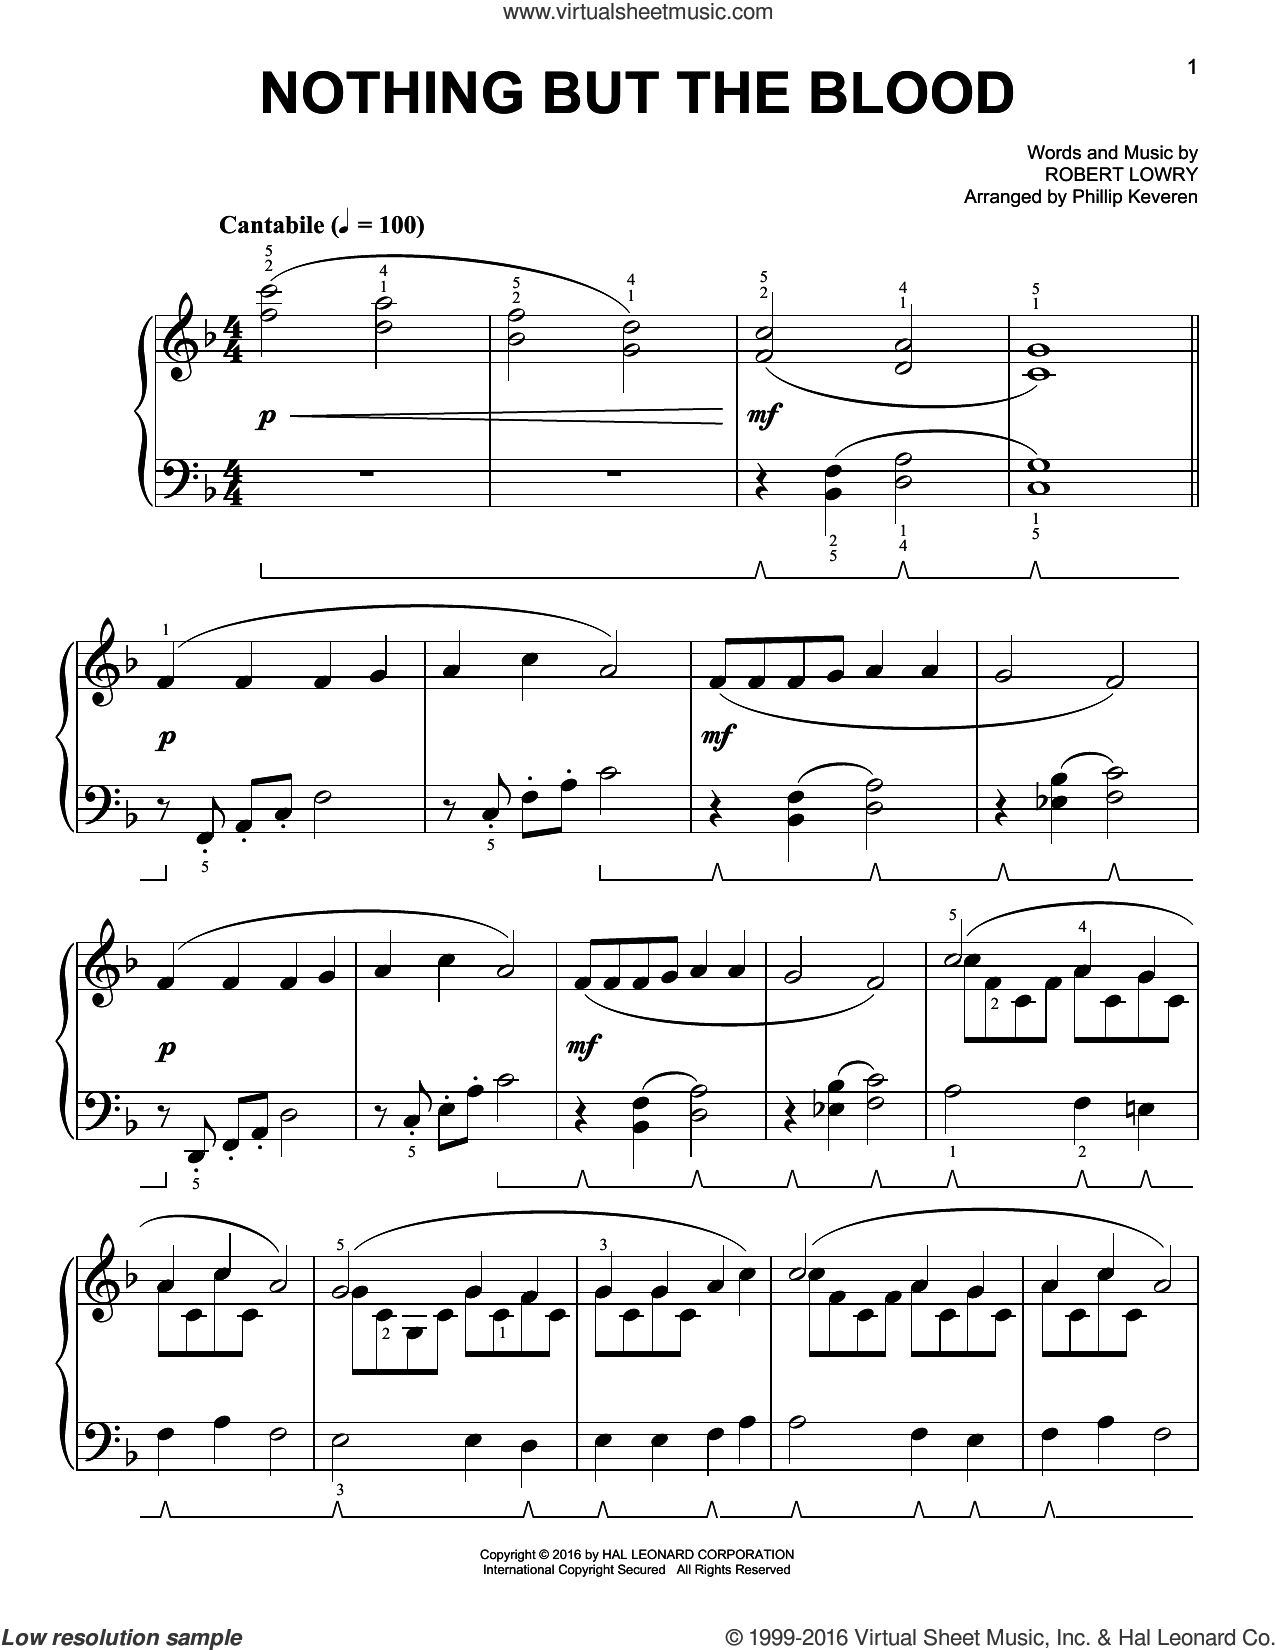 Nothing But The Blood [Classical version] (arr. Phillip Keveren) sheet music for piano solo by Robert Lowry and Phillip Keveren, easy skill level